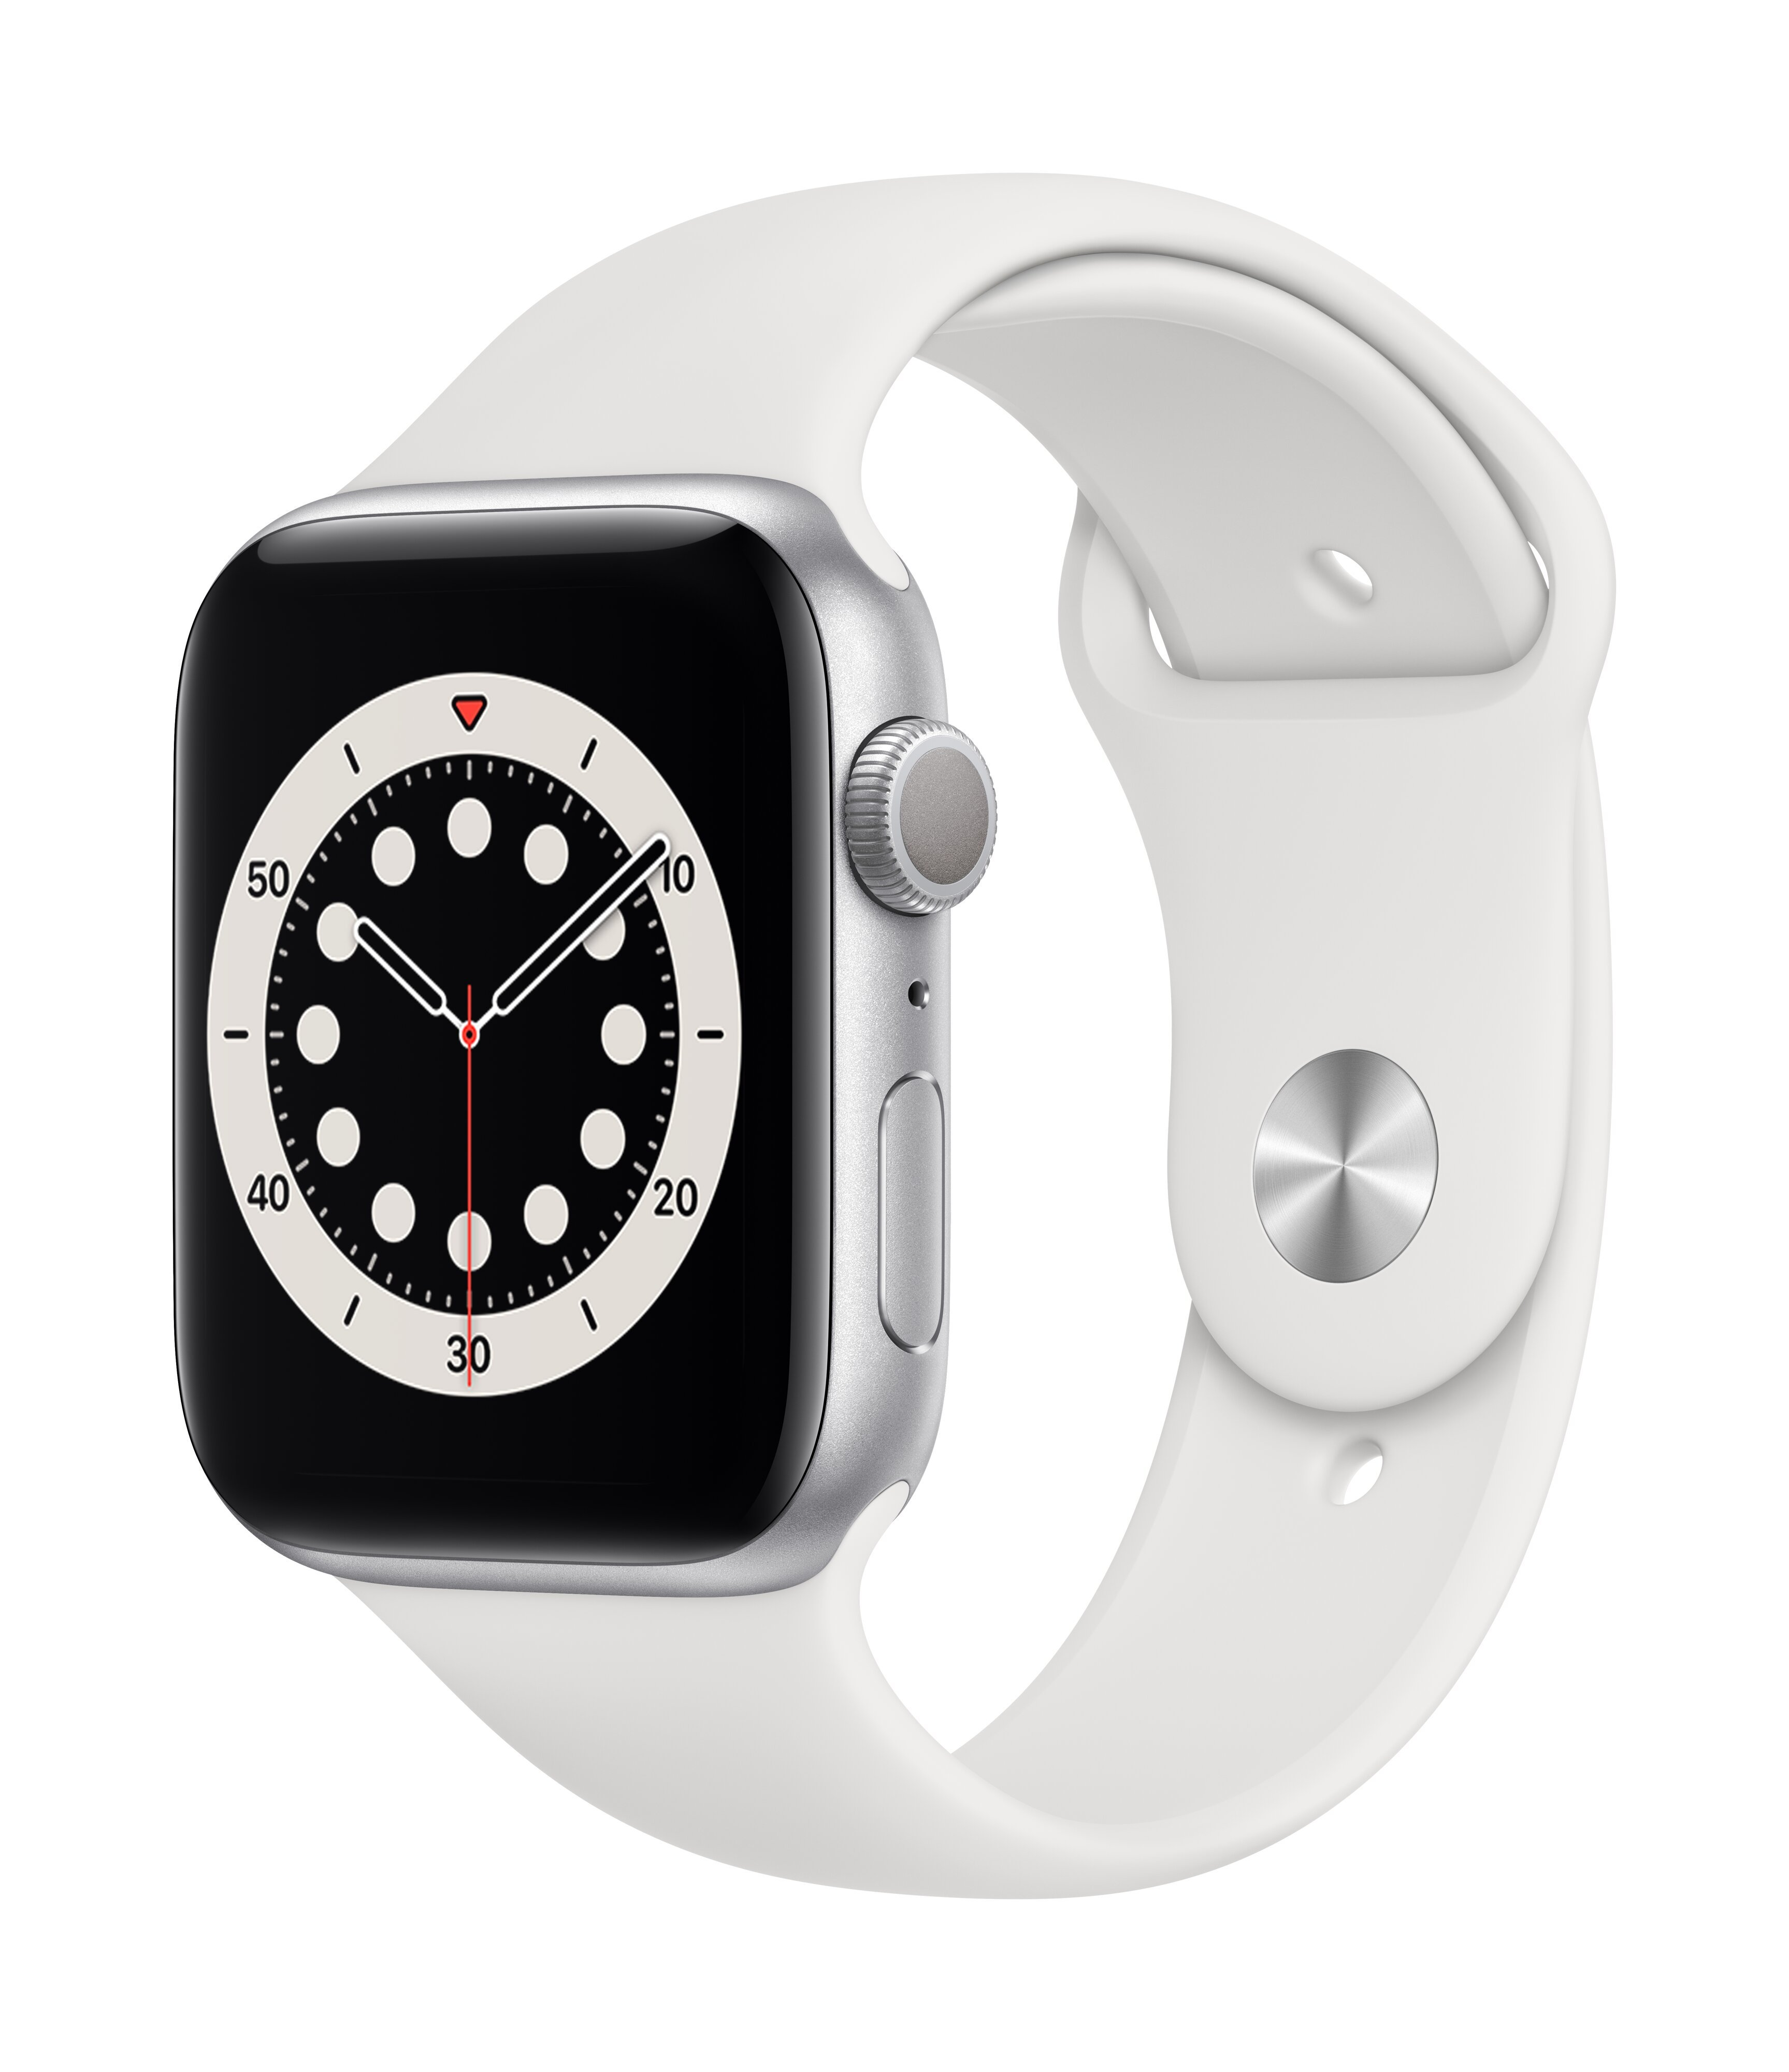 Išmanusis laikrodis Apple Watch Series 6 (GPS, 44 mm) – Silver Aluminum Case with White Sport Band